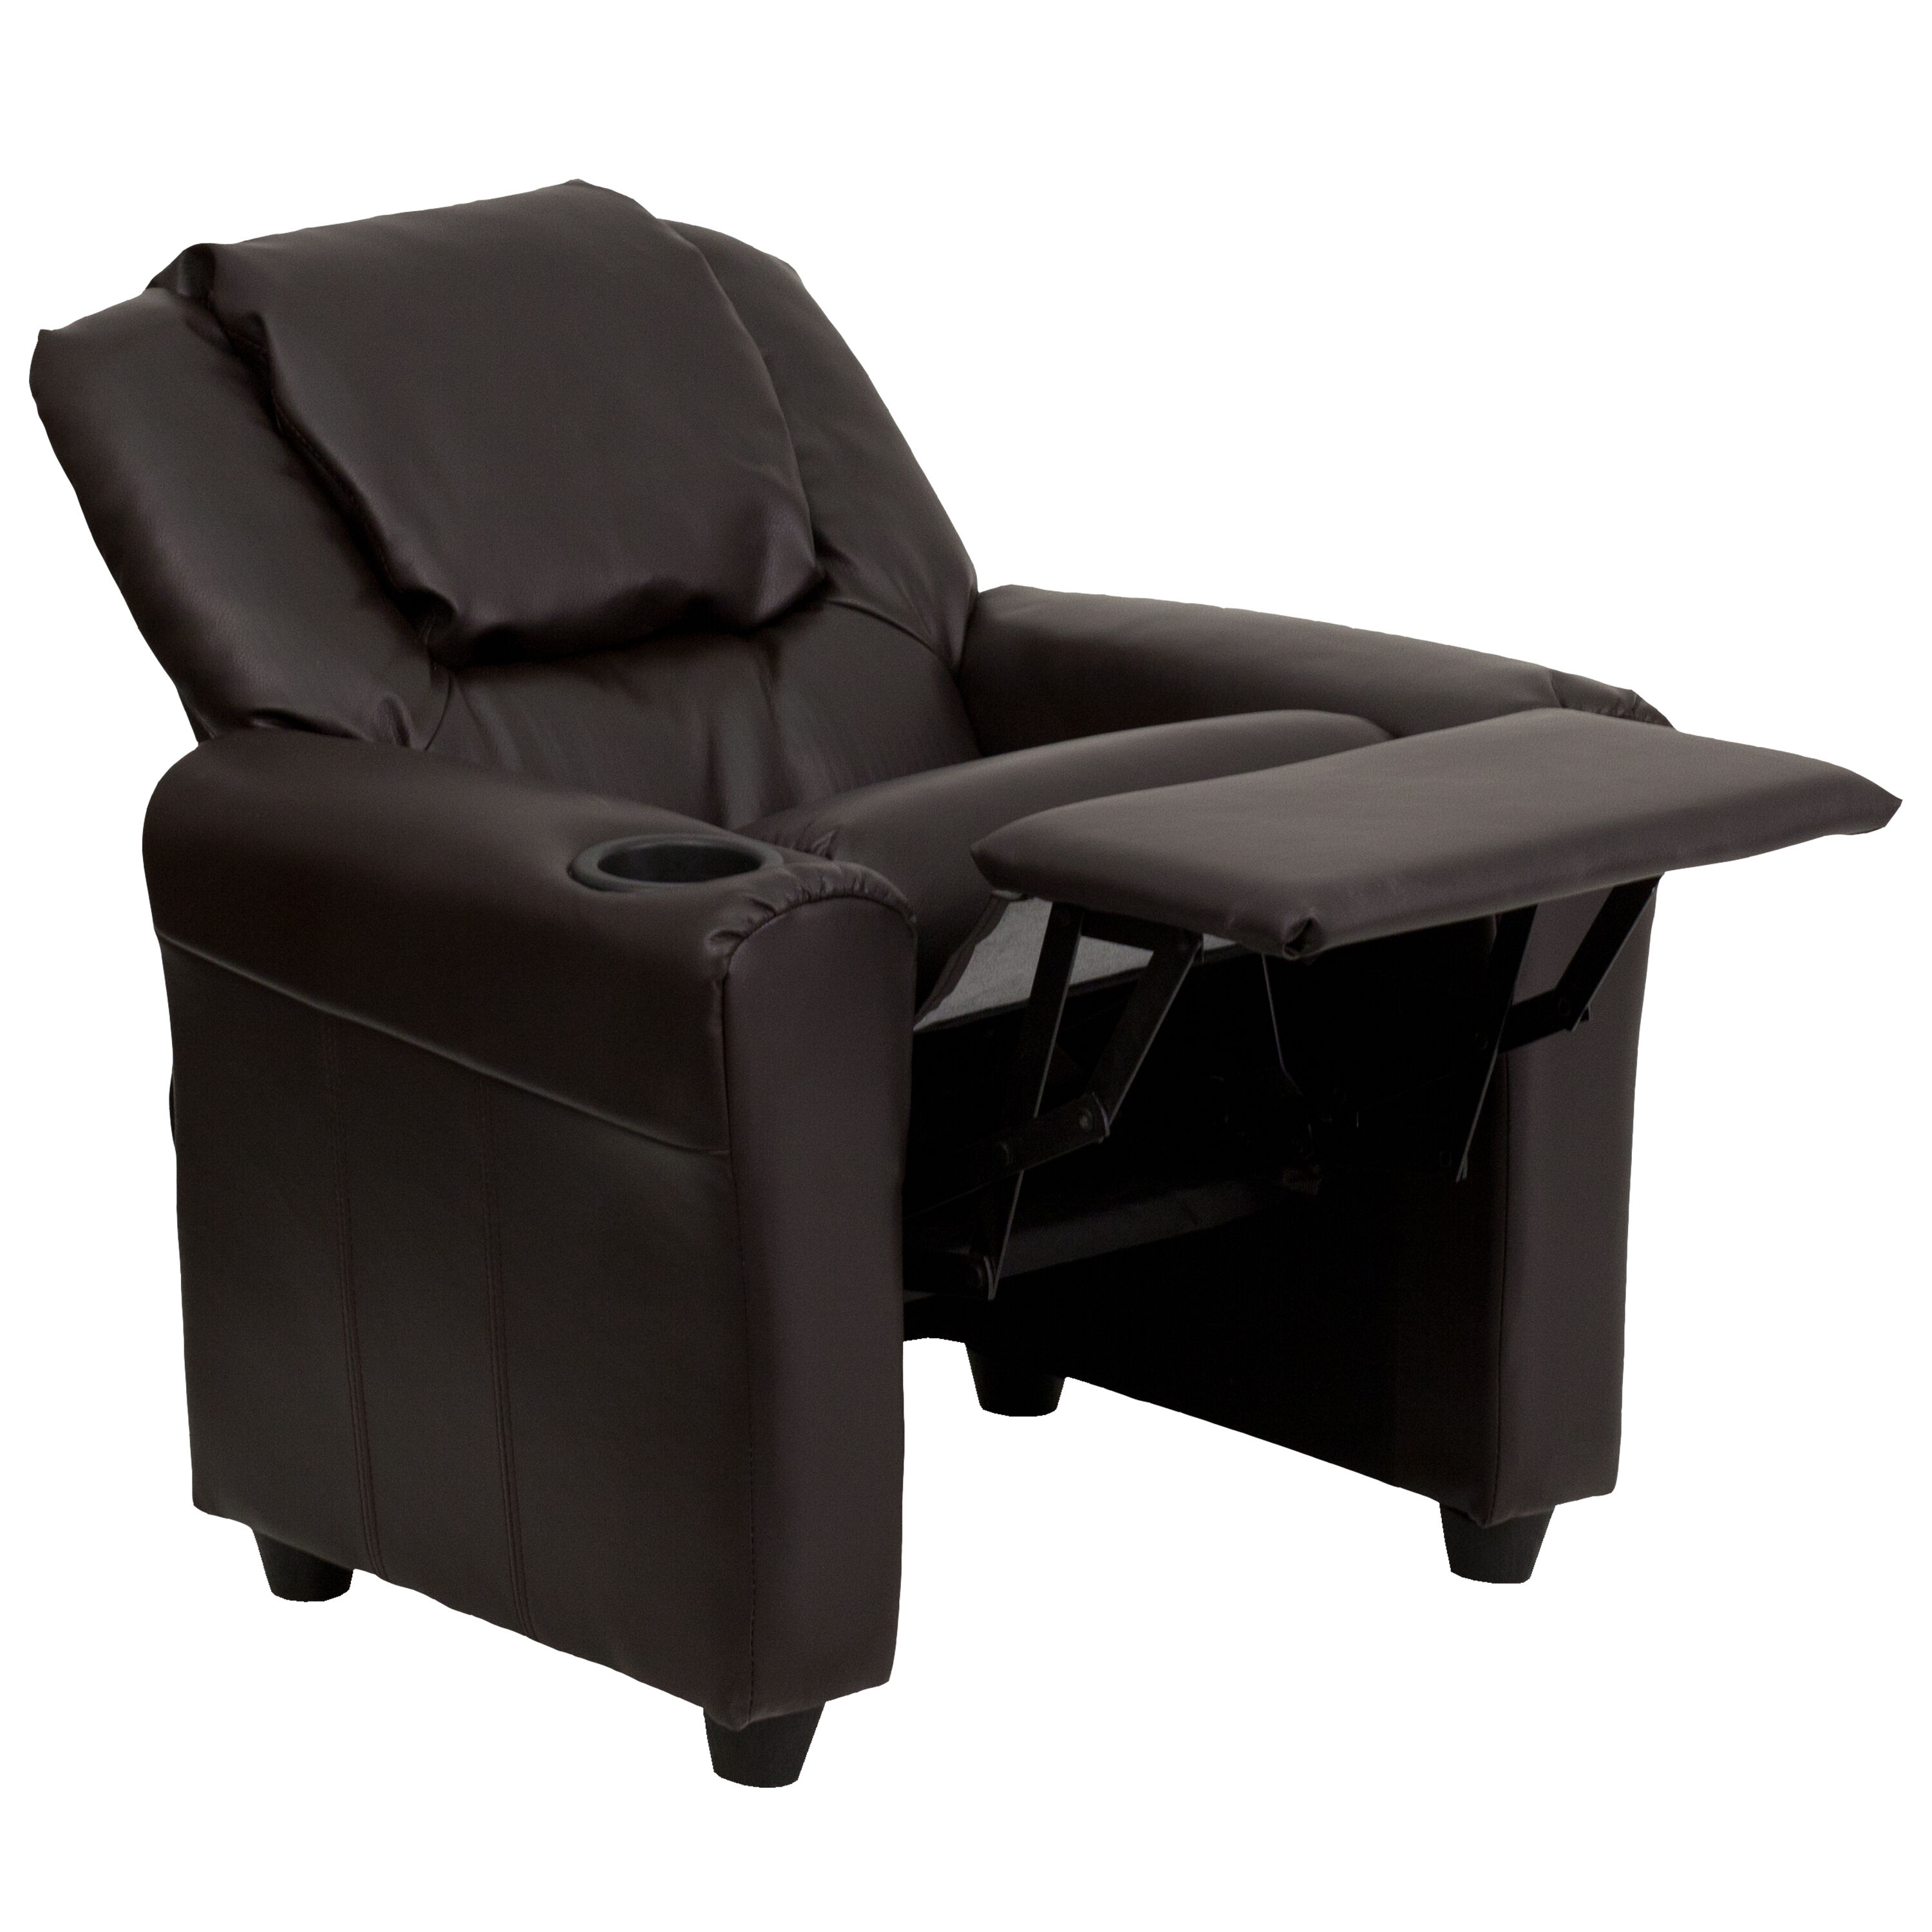 Our Contemporary Brown Leather Kids Recliner With Cup Holder And Headrest  Is On Sale Now.